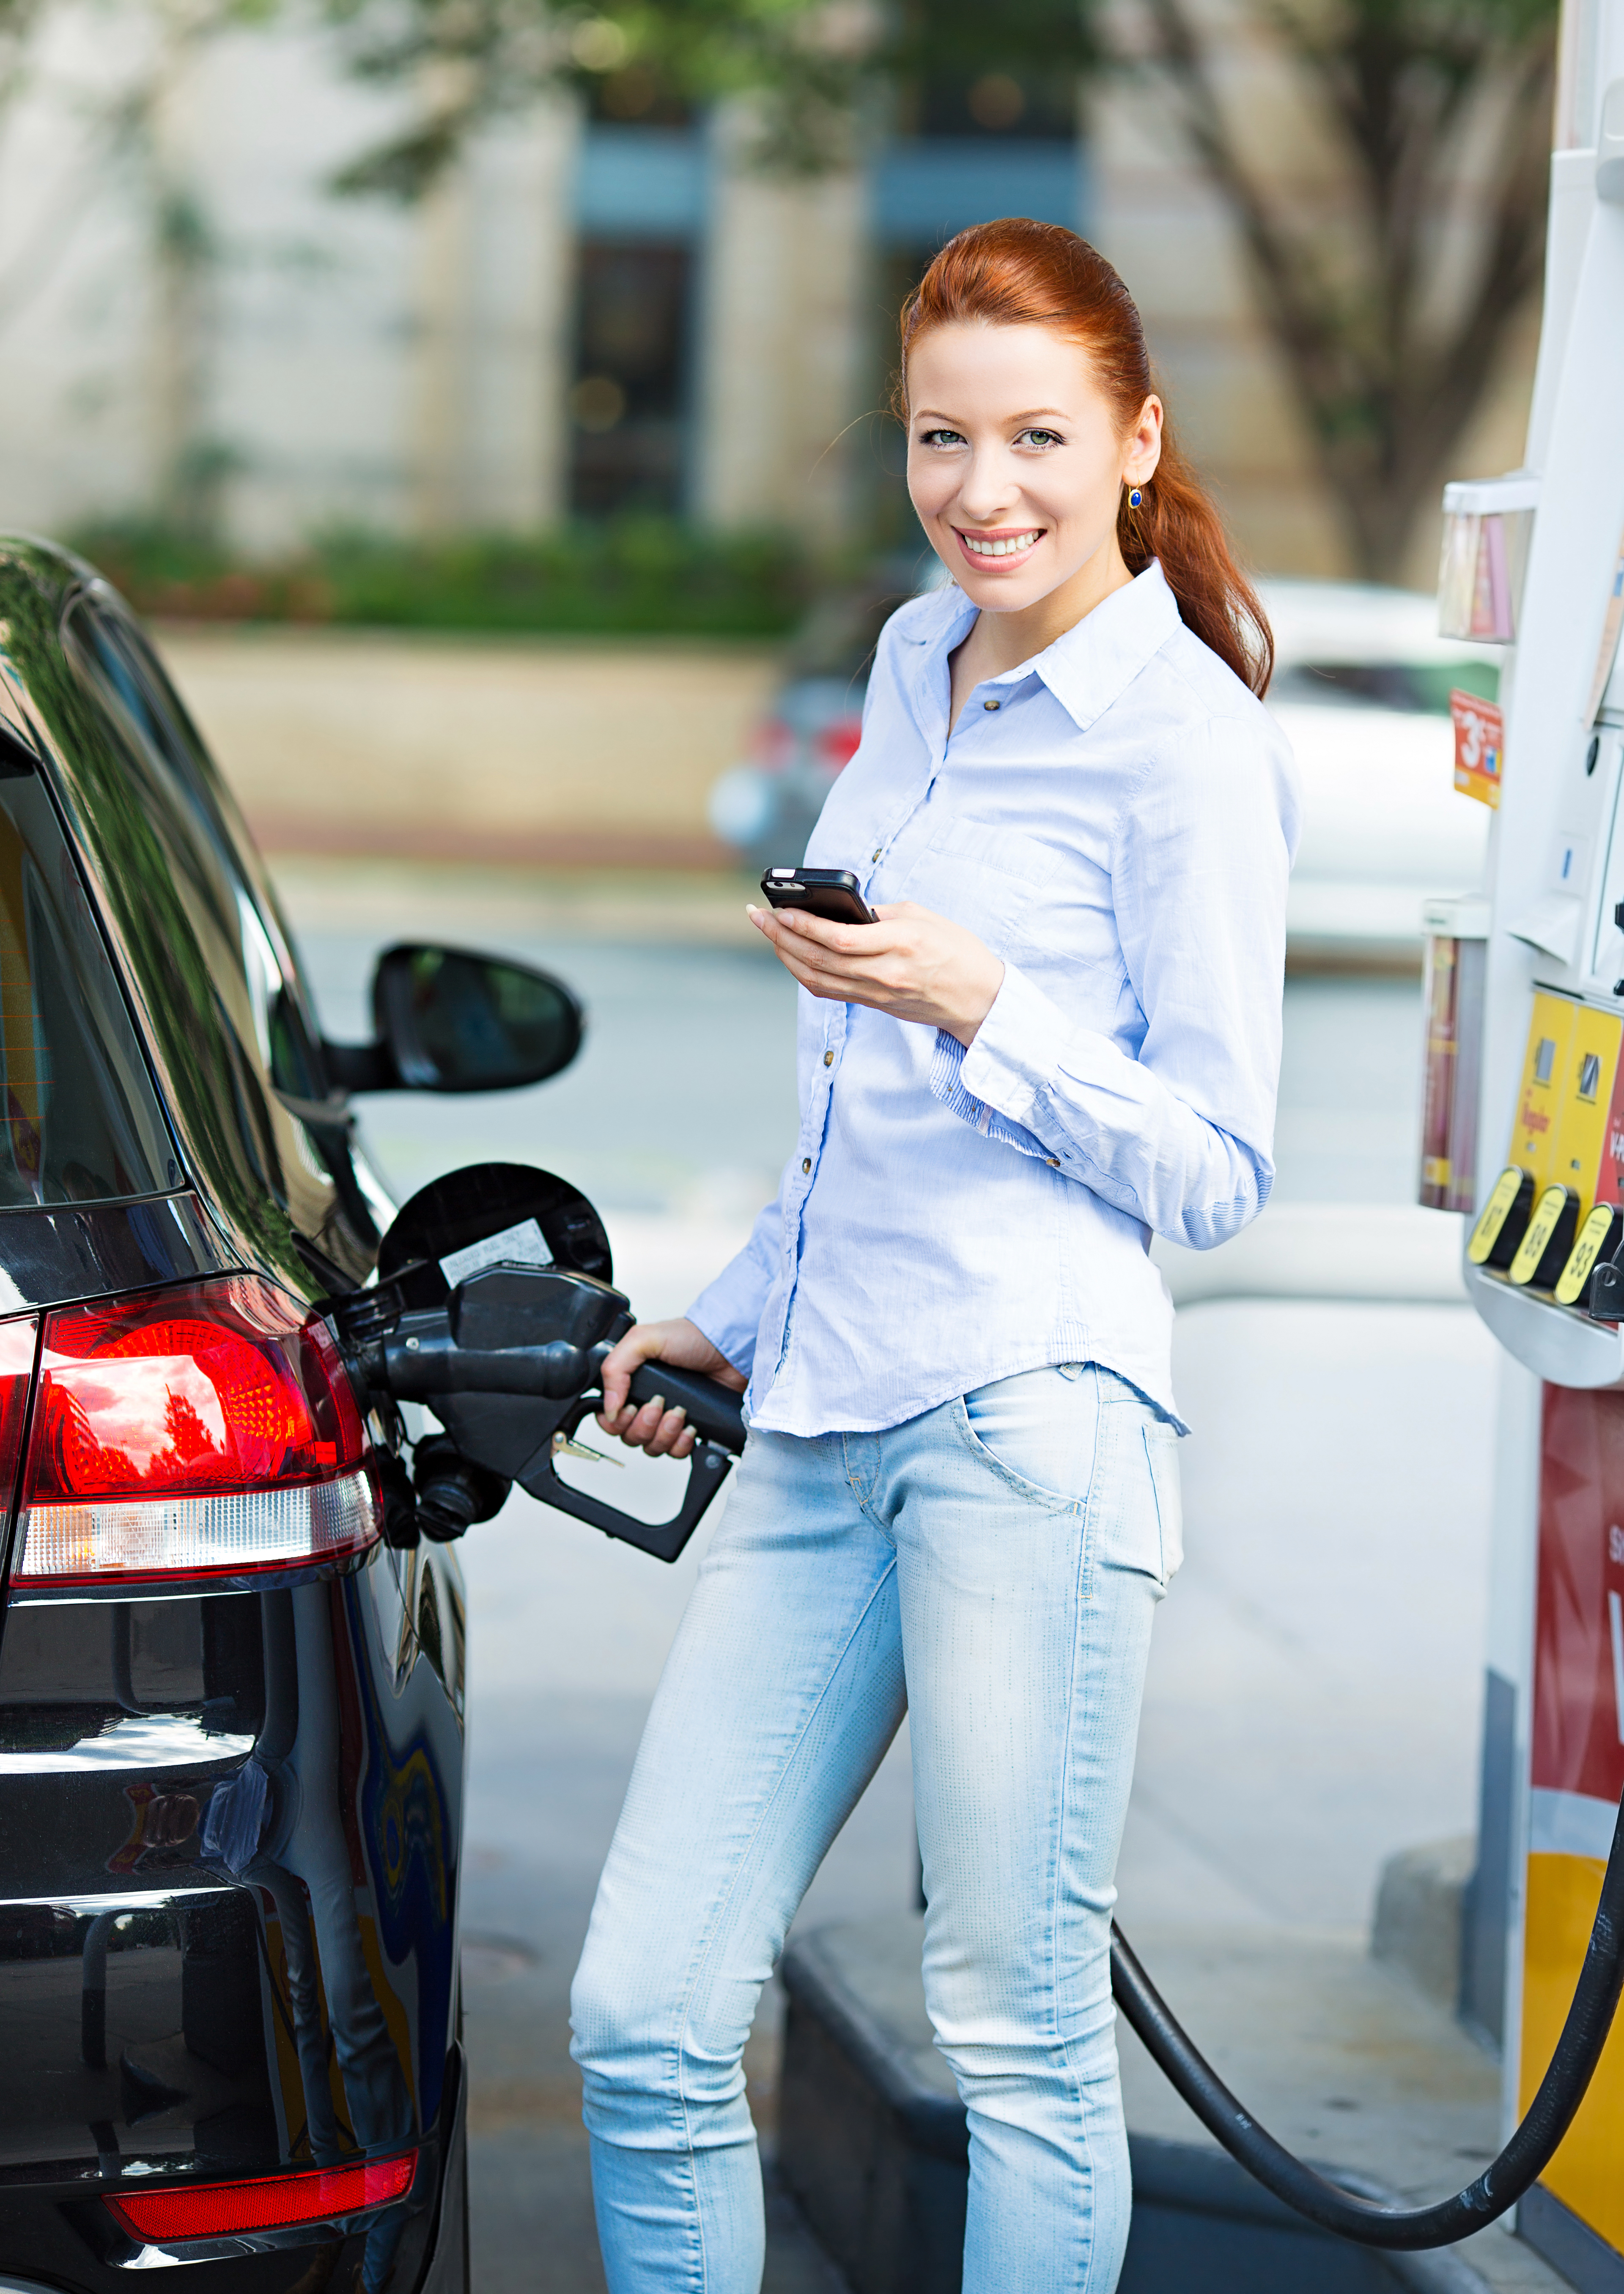 Get instant savings at the pump with our fuel rewards program at Food & Nutrition Group.